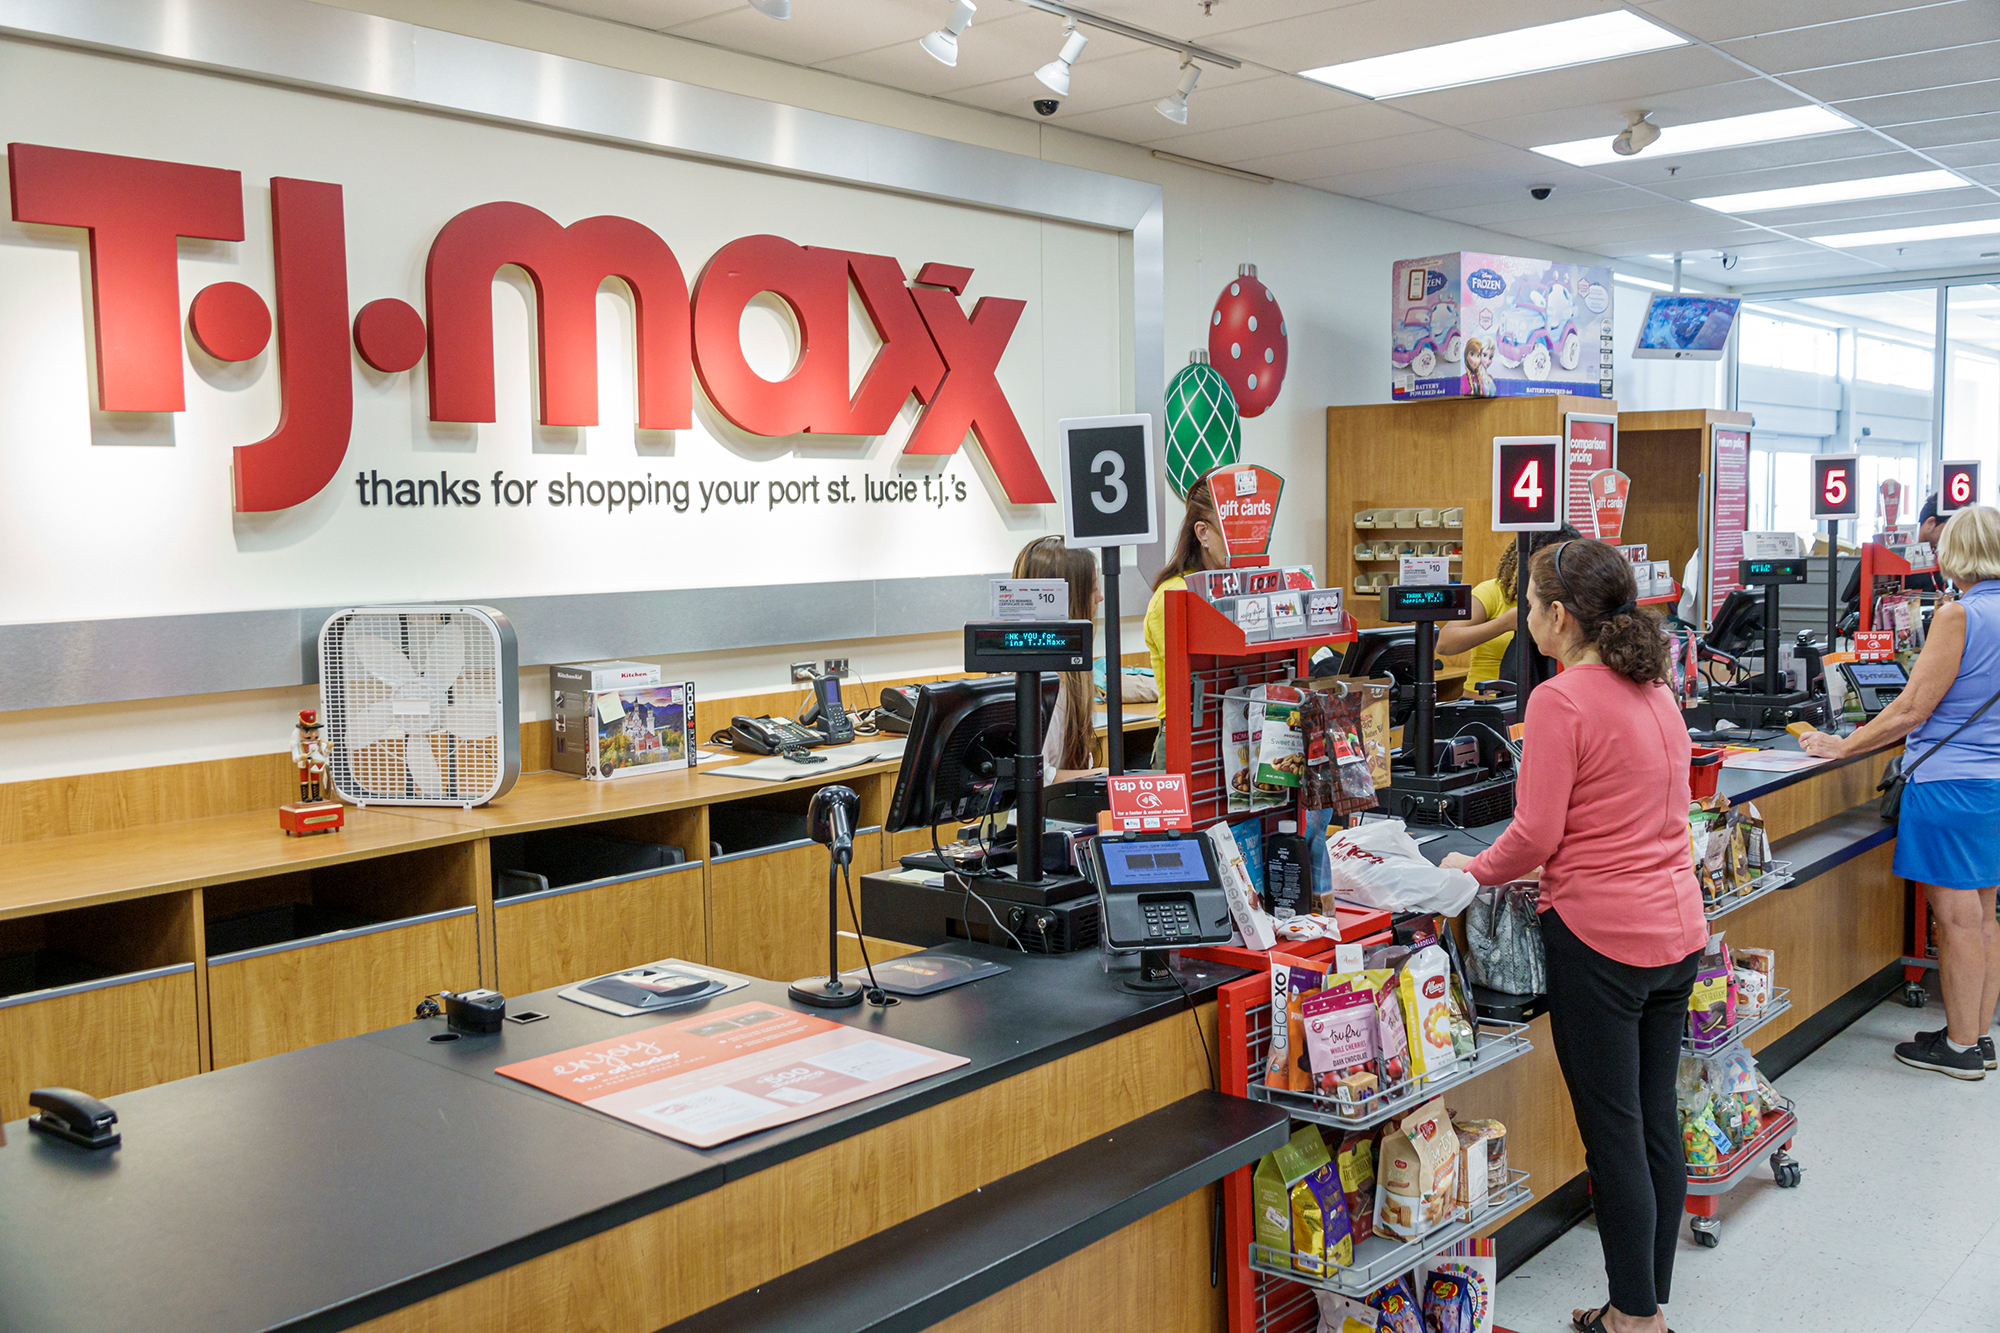 TJ Maxx hopes customers will 'revenge shop' to make up for a lost year